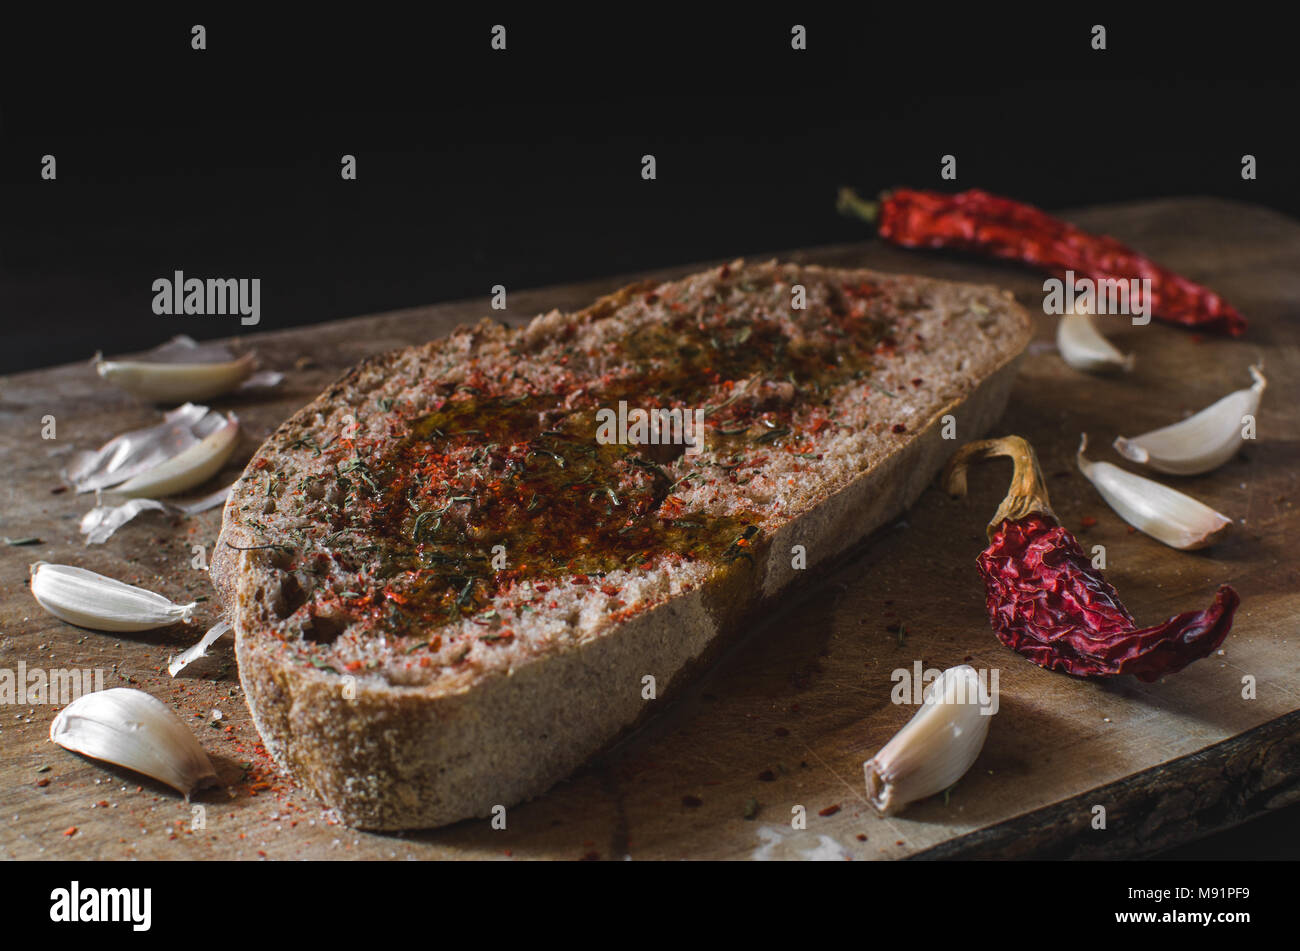 Slice of bread with olive oil pepper, savory, salt and garlic on the wooden board - Stock Image